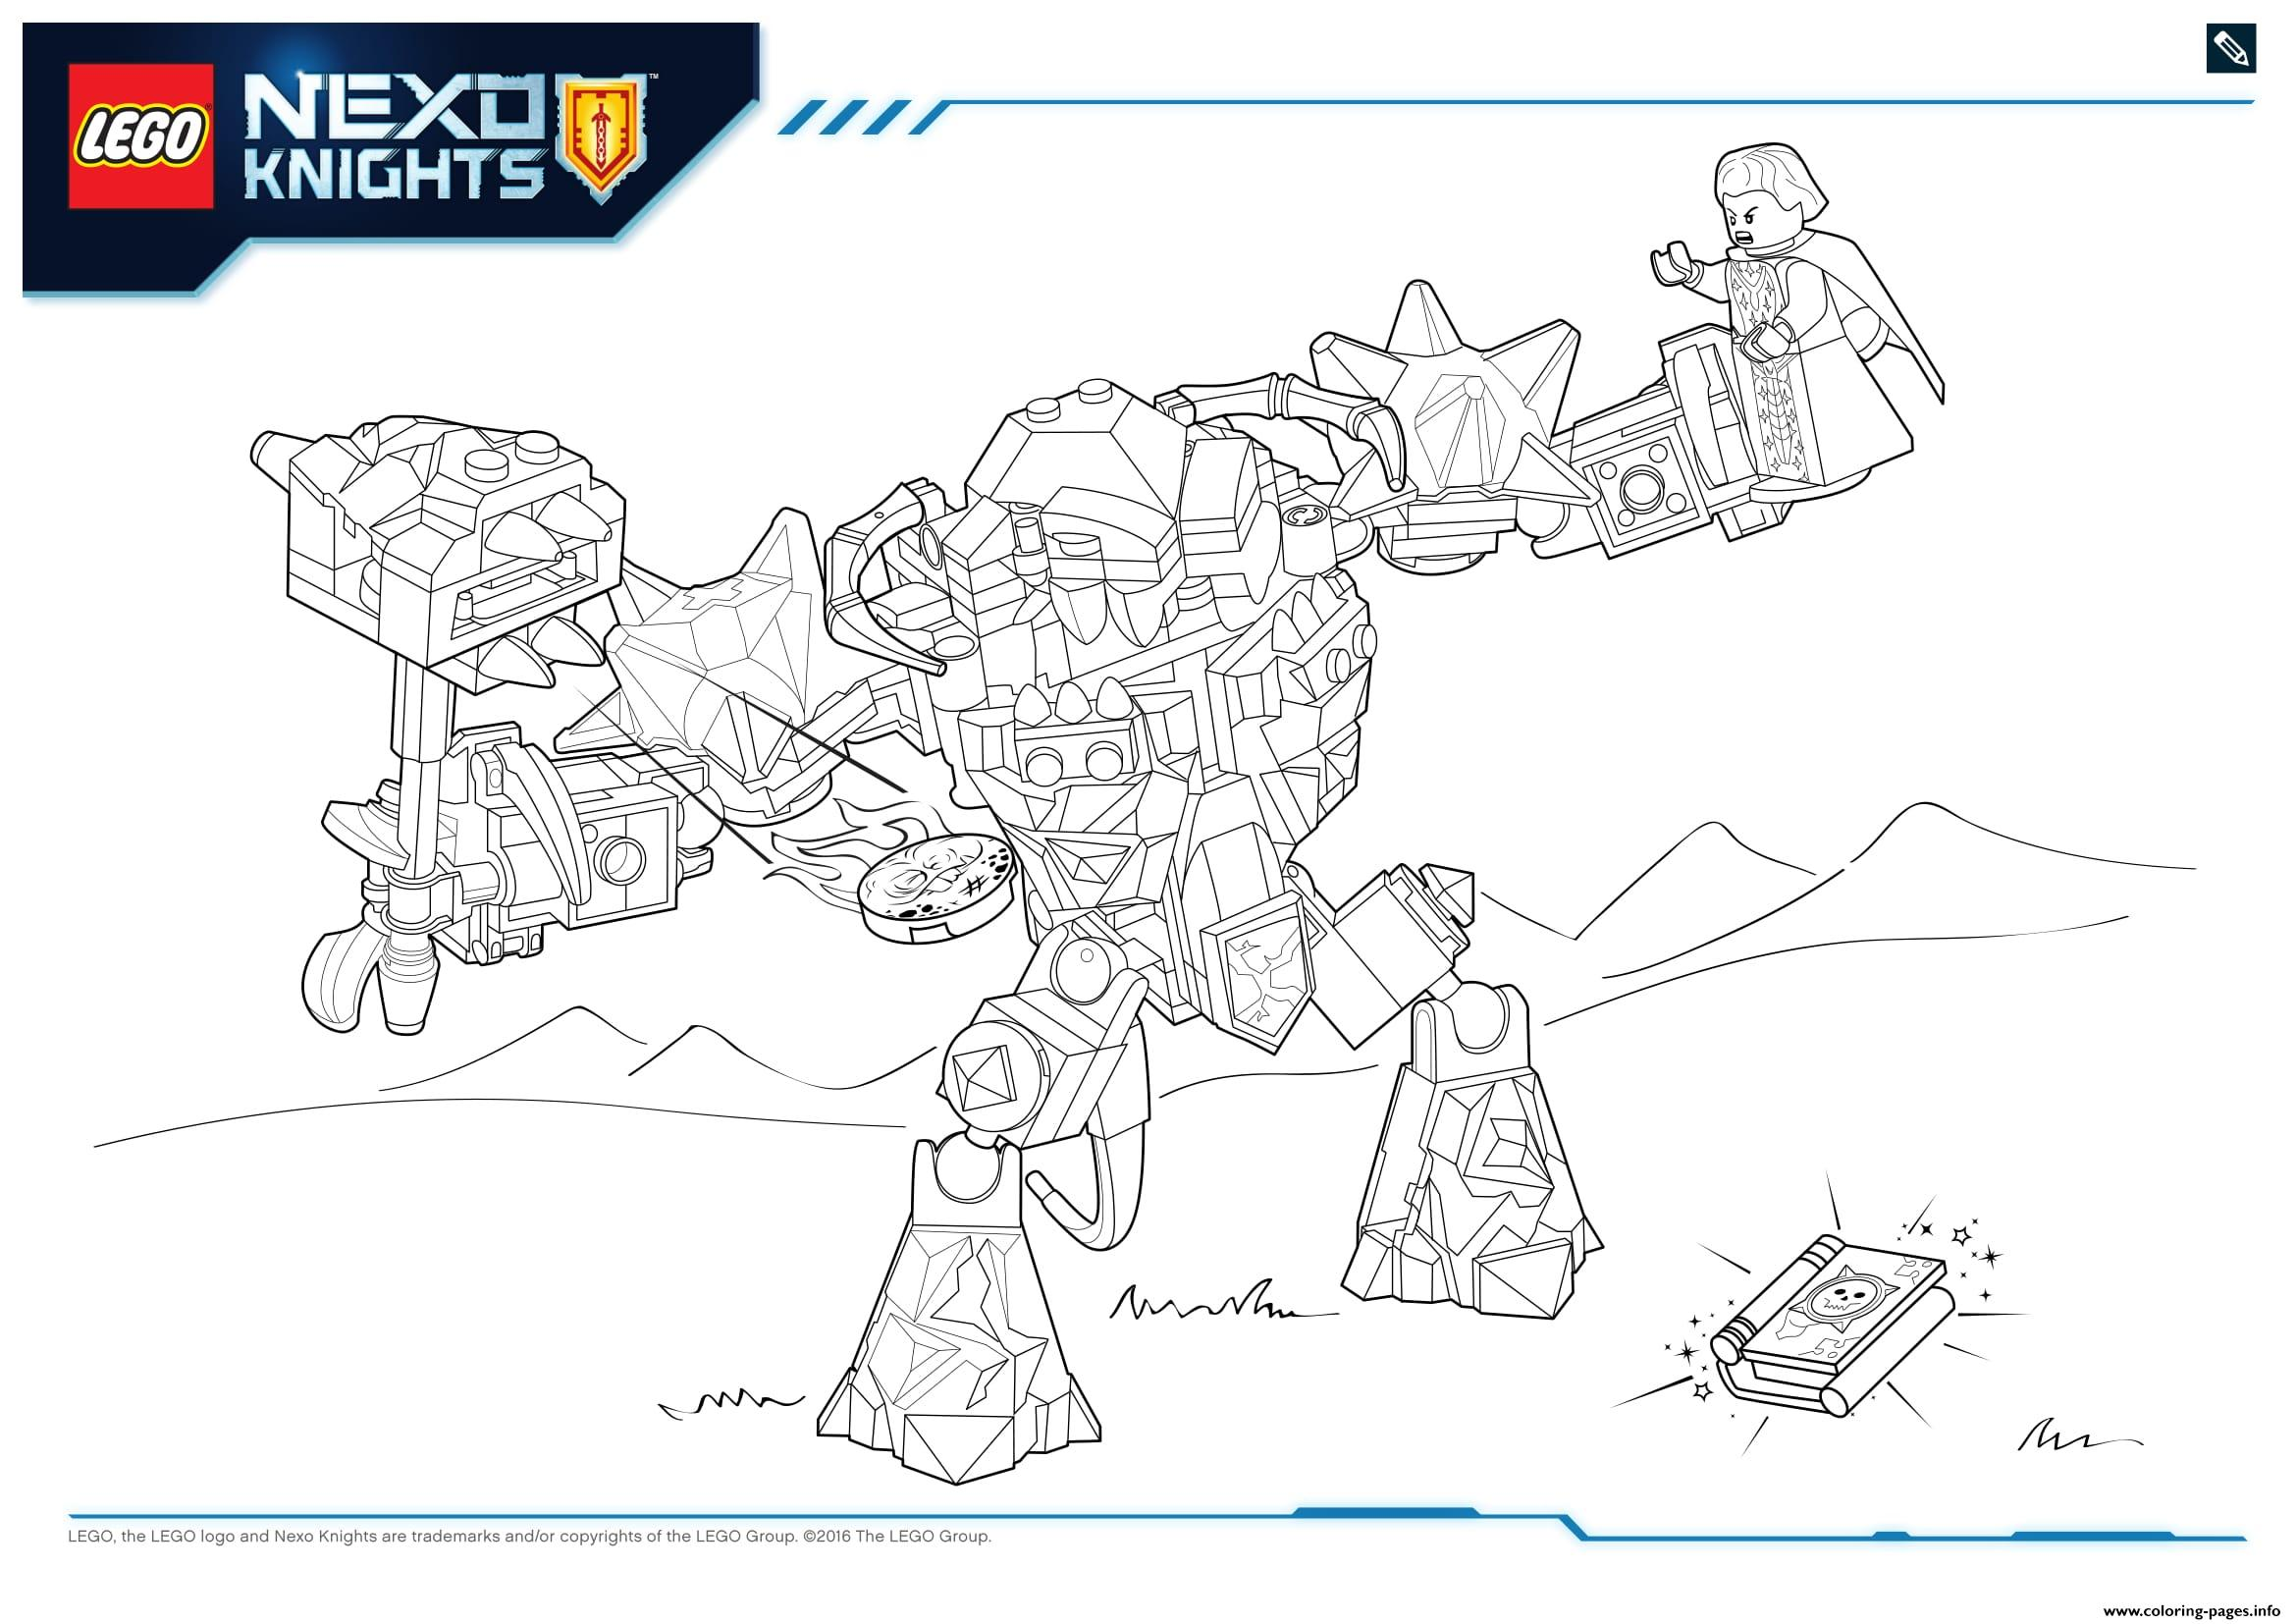 Lego Nexo Knights Monster Productss